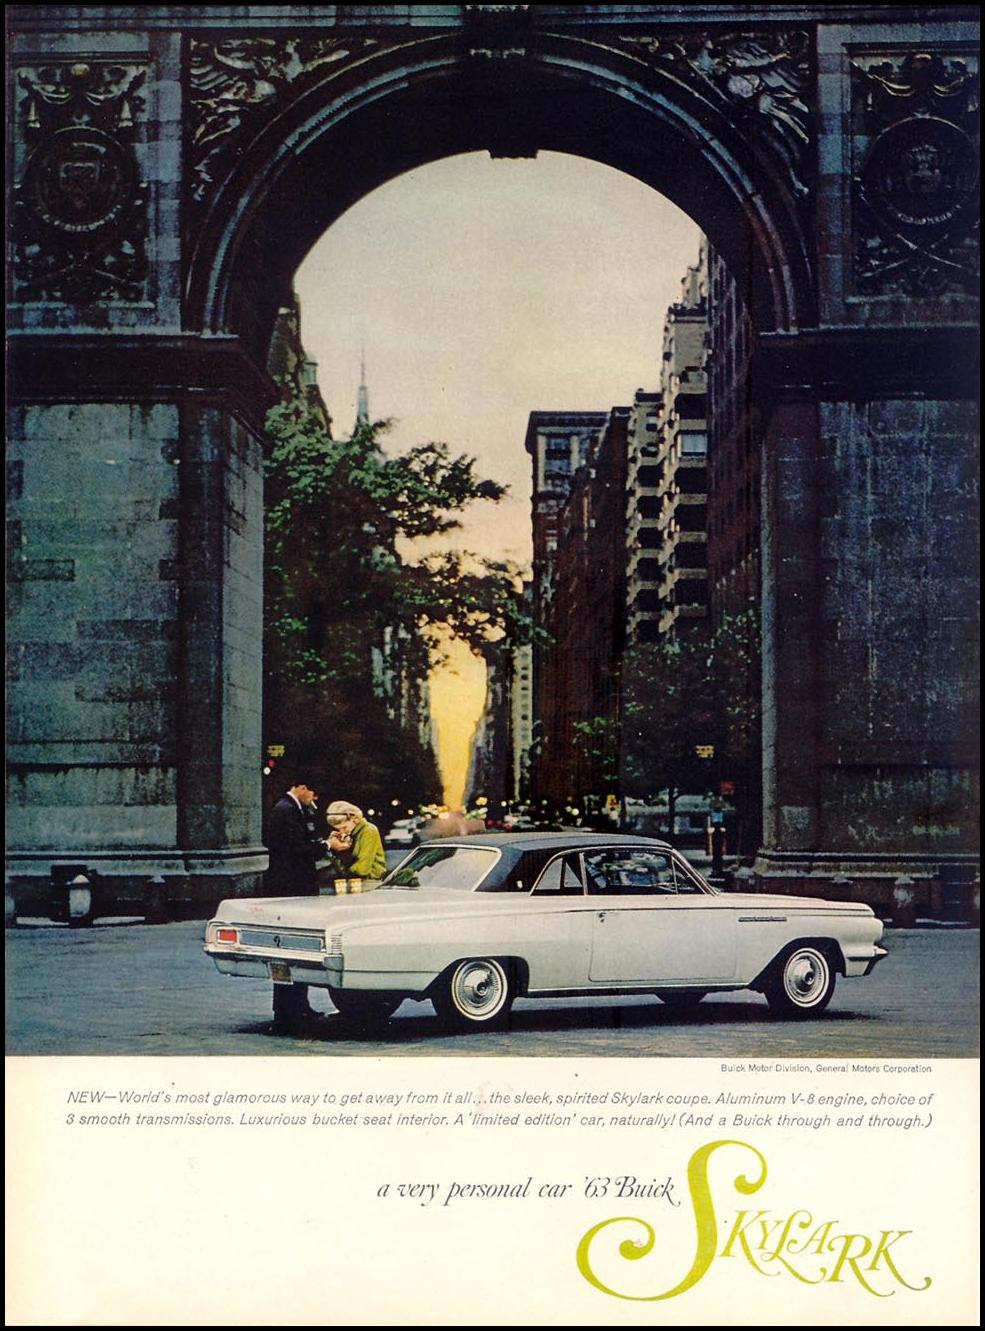 BUICK AUTOMOBILES TIME 12/07/1962 p. 36